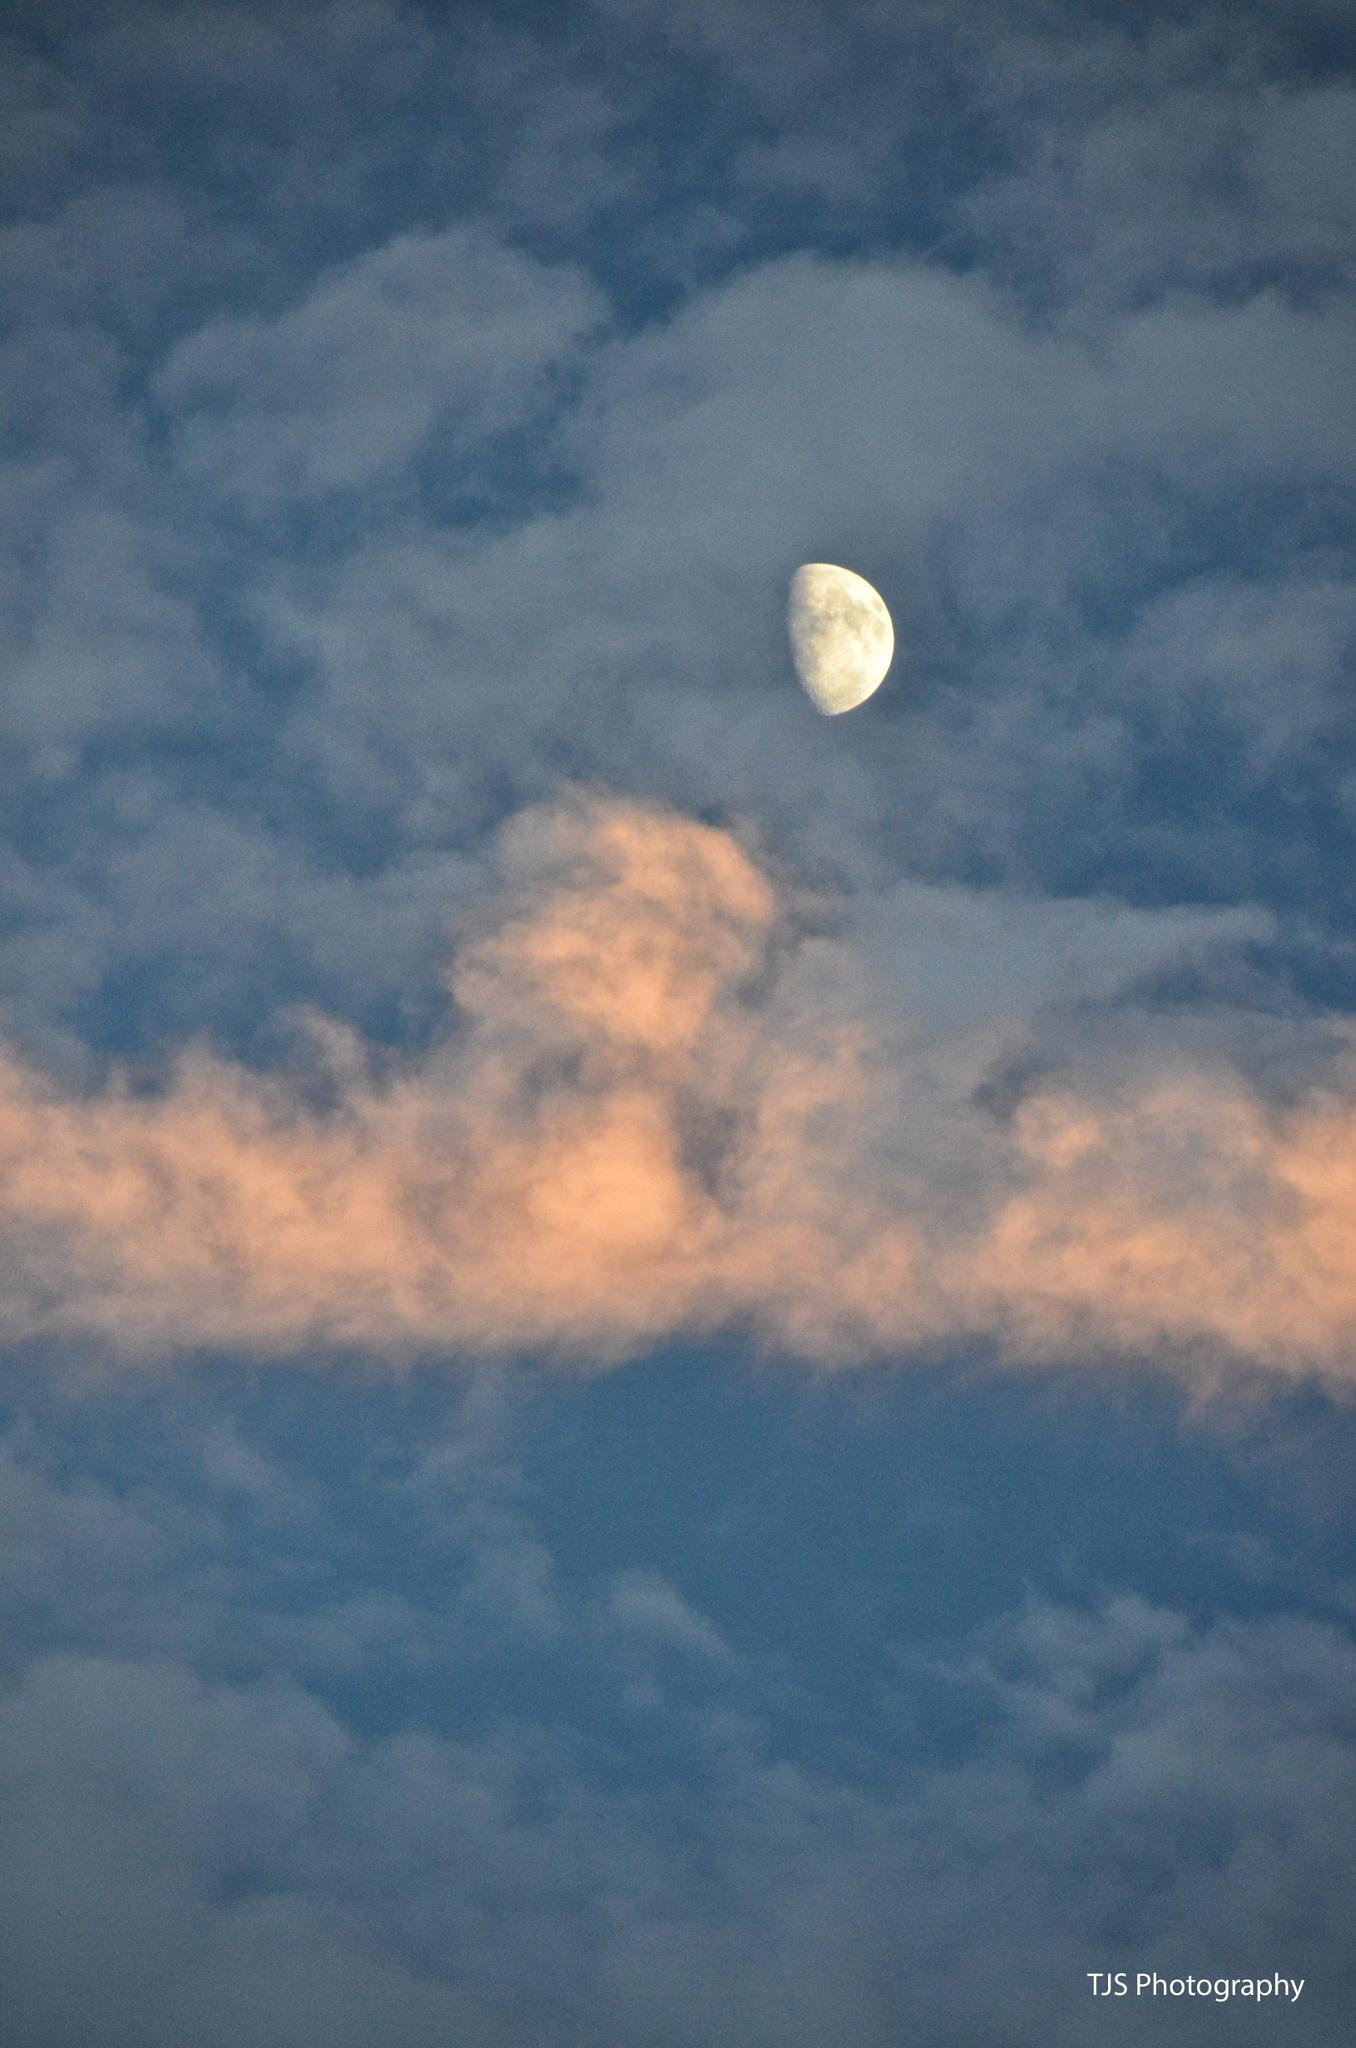 A cloudy moonlit night by theresa.stevens.5817